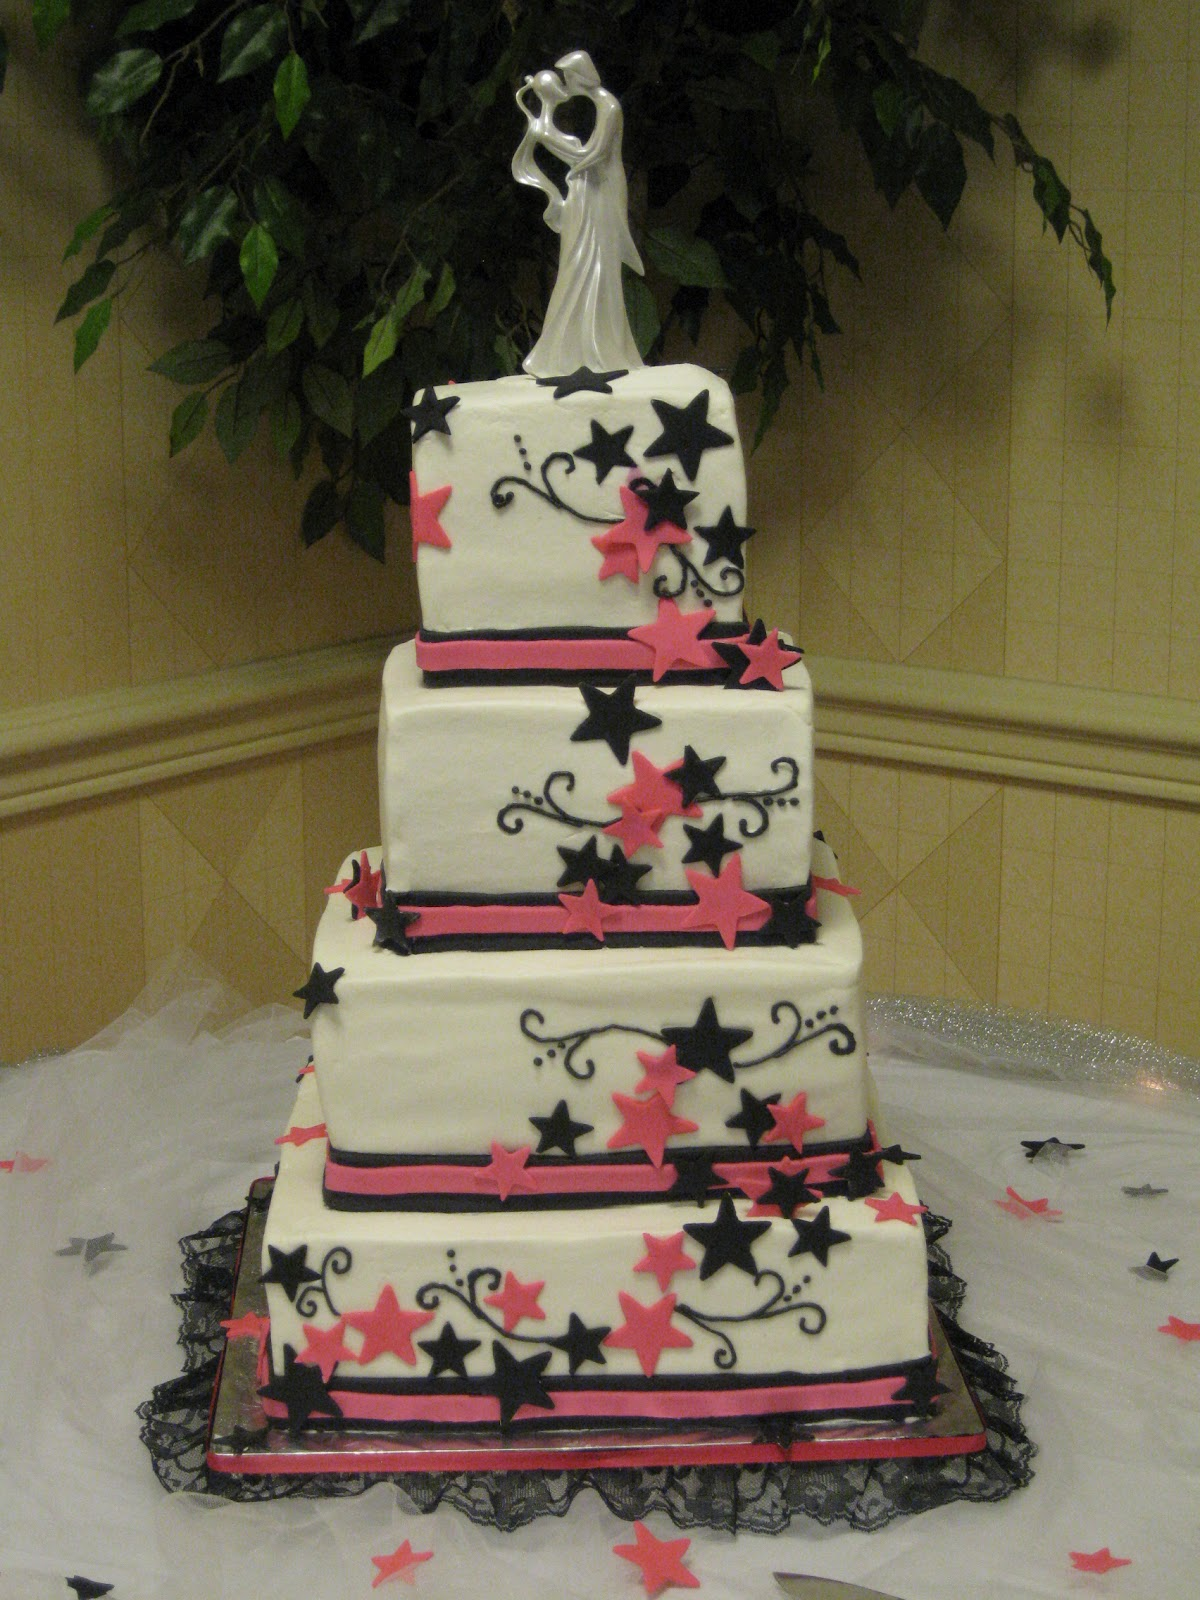 D s Cookie Jar & More Hot Pink and Black Wedding cake